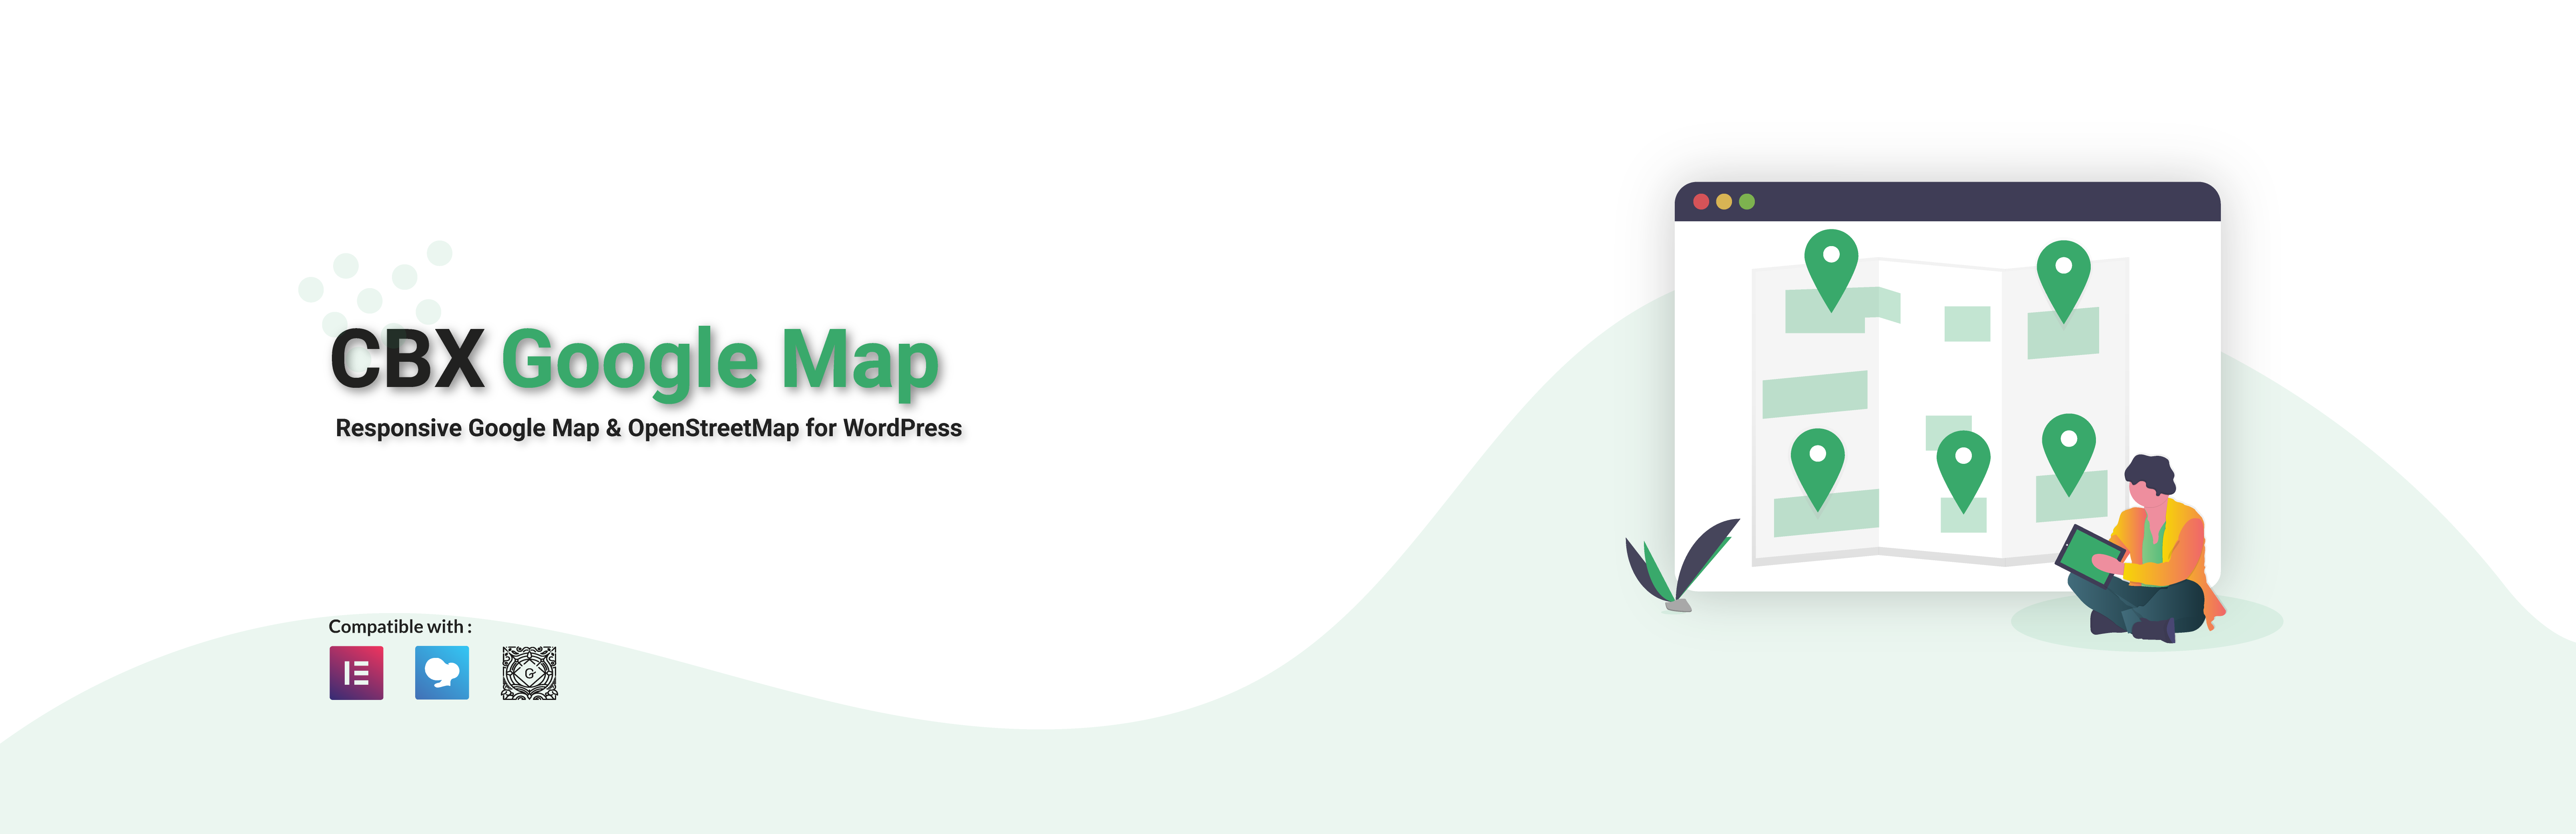 product header top